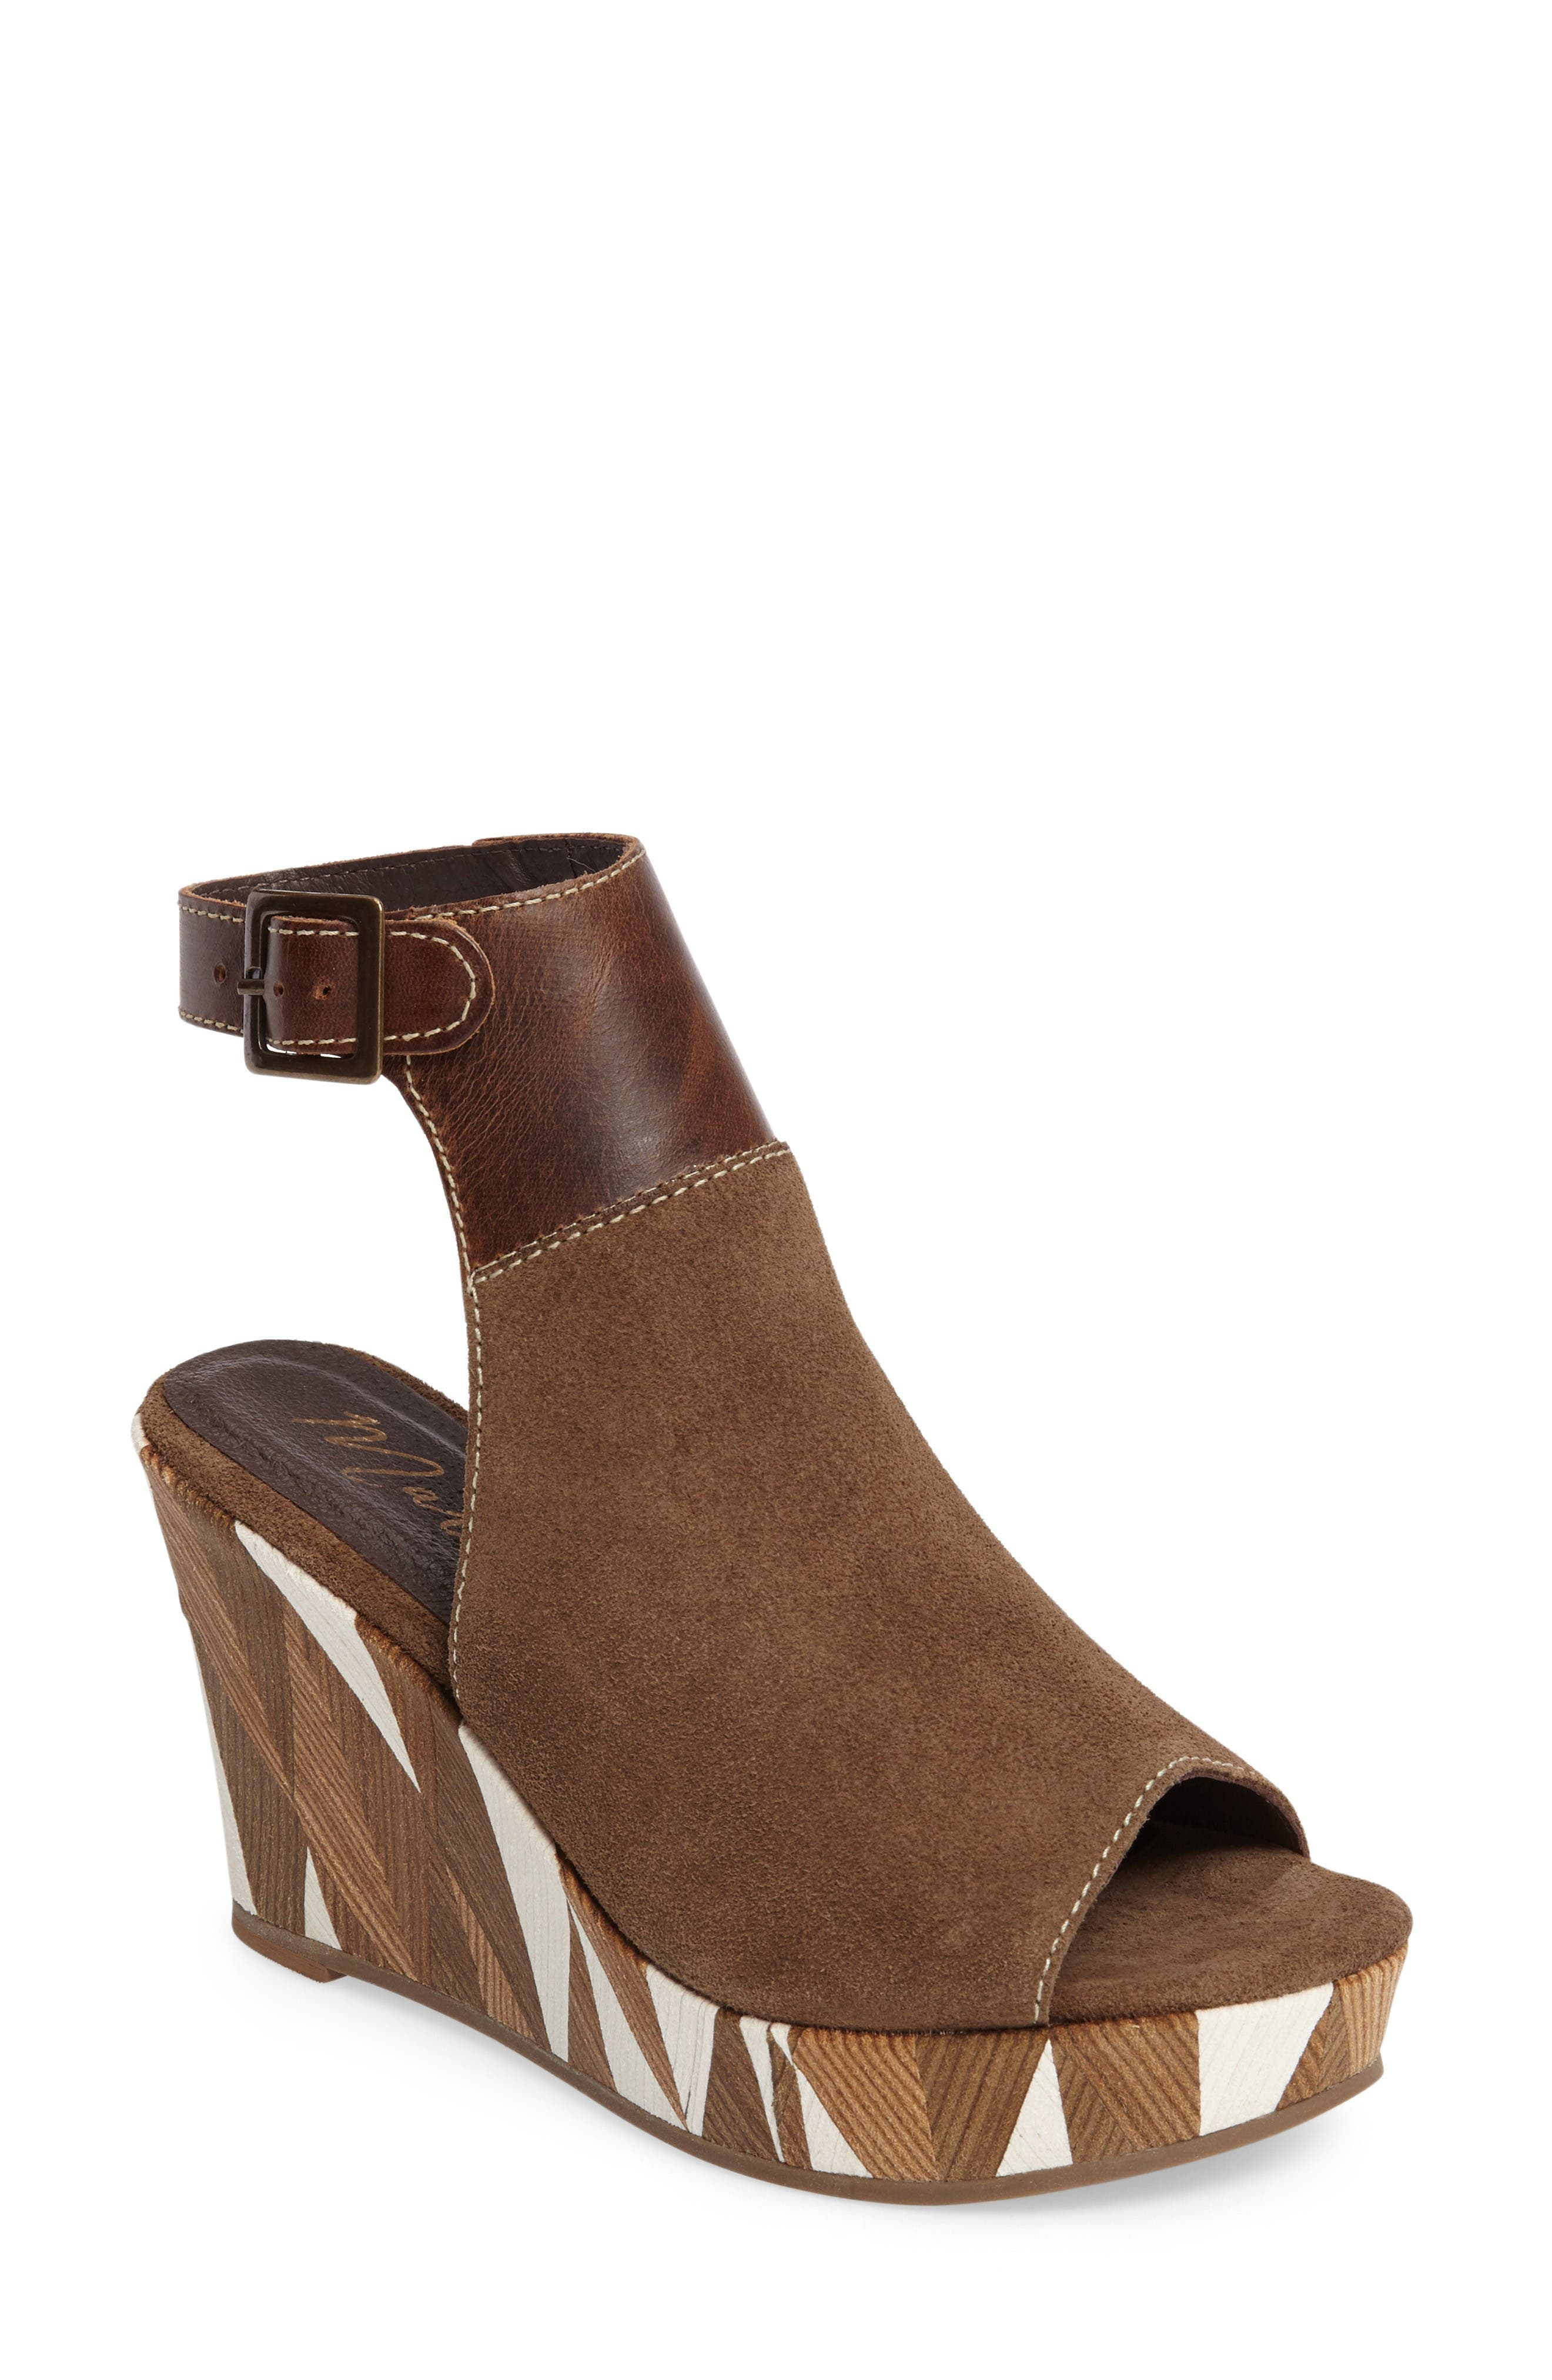 Harlequin Wedge Sandal,                         Main,                         color, Taupe Leather